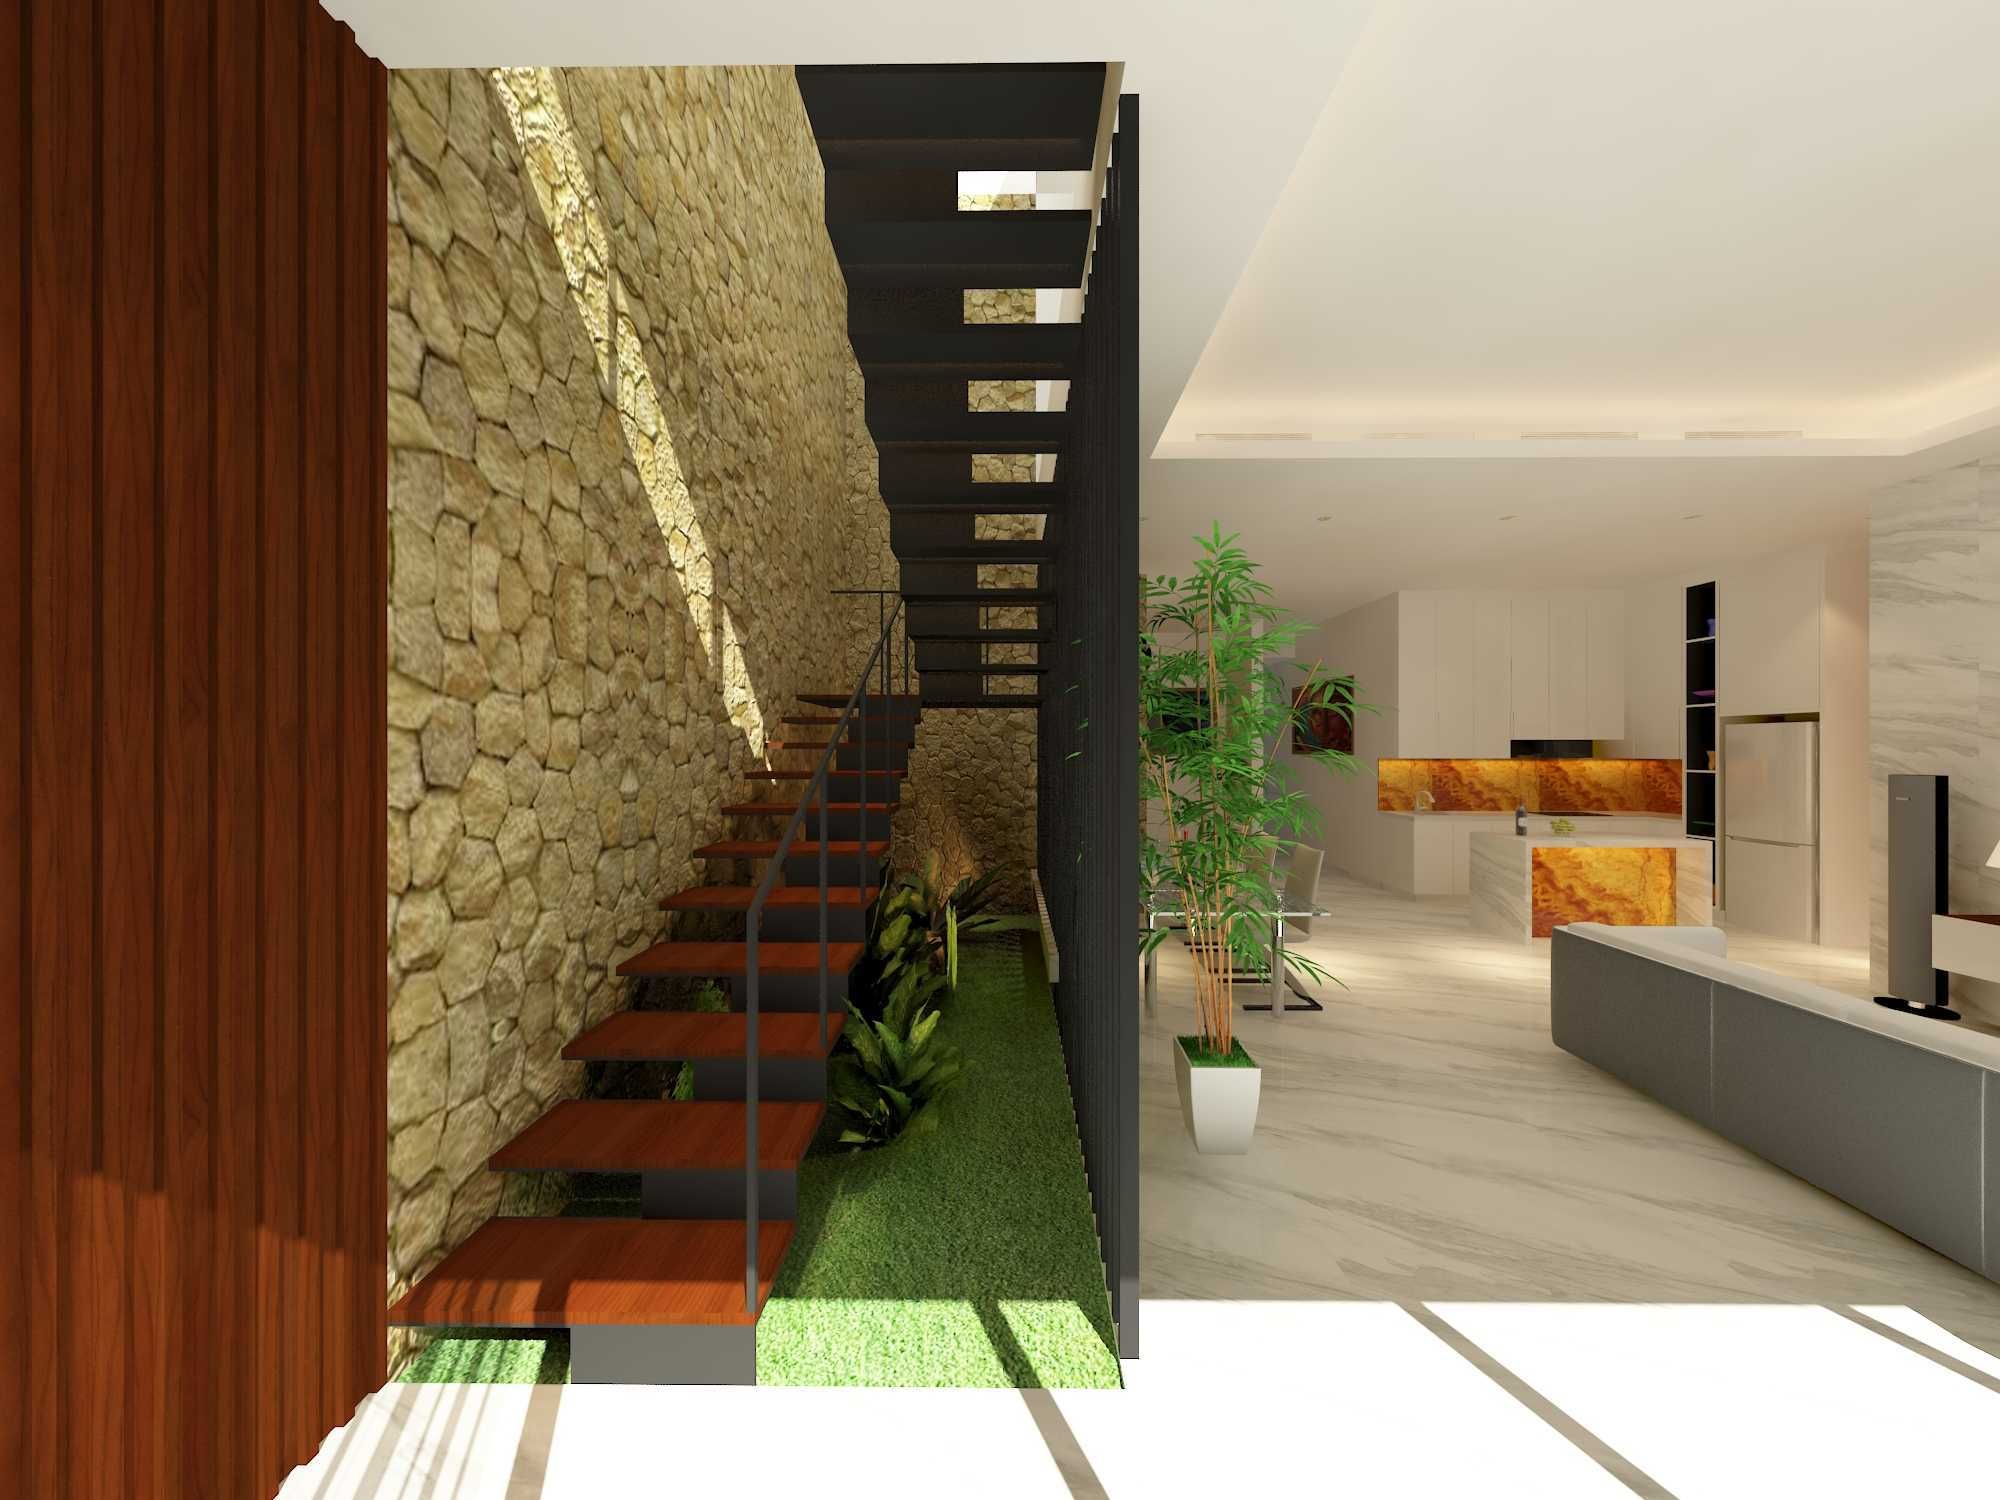 Alima Studio Mr. A's House Jakarta, Indonesia Jakarta, Indonesia Stairs   27837